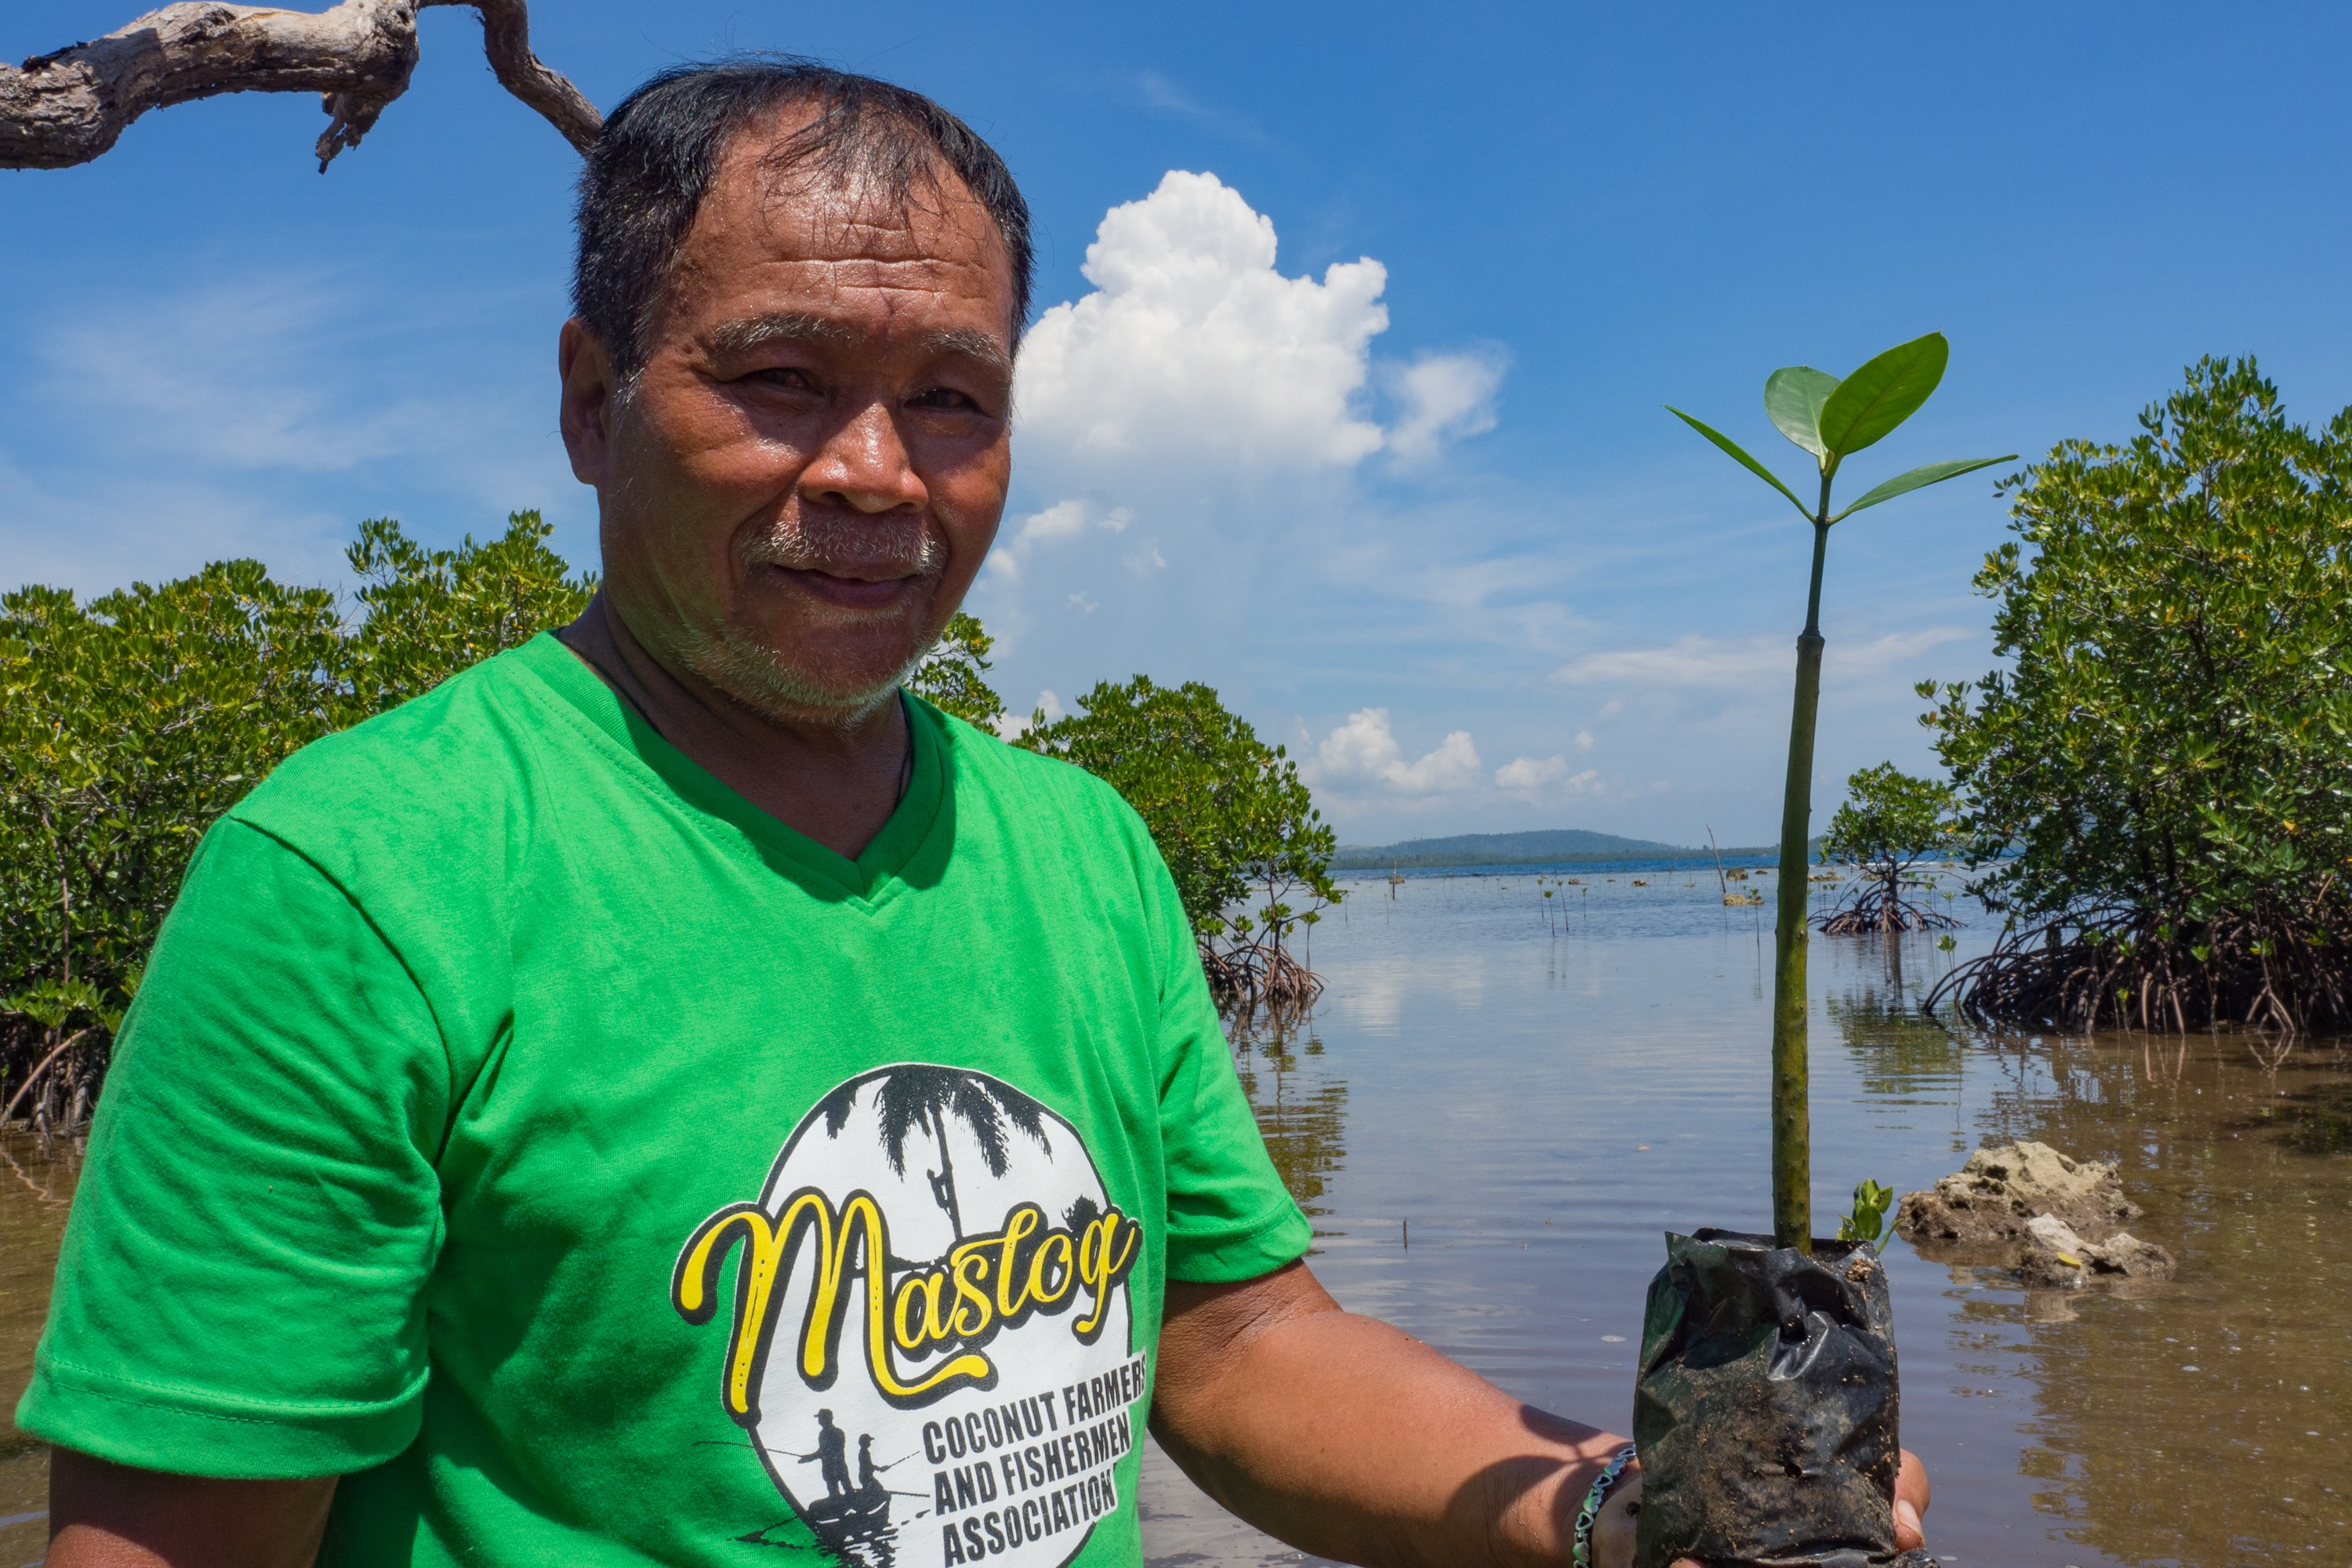 Pedro Calumpiano, President of the Maslog Coconut Farmer and Fishermen Association, holding a mangrove sapling grown in the organization's nursery. 'As time goes by, climate change will worsen, and those who will be most affected are our children.' (Photo: Elizabeth Stevens / Oxfam)